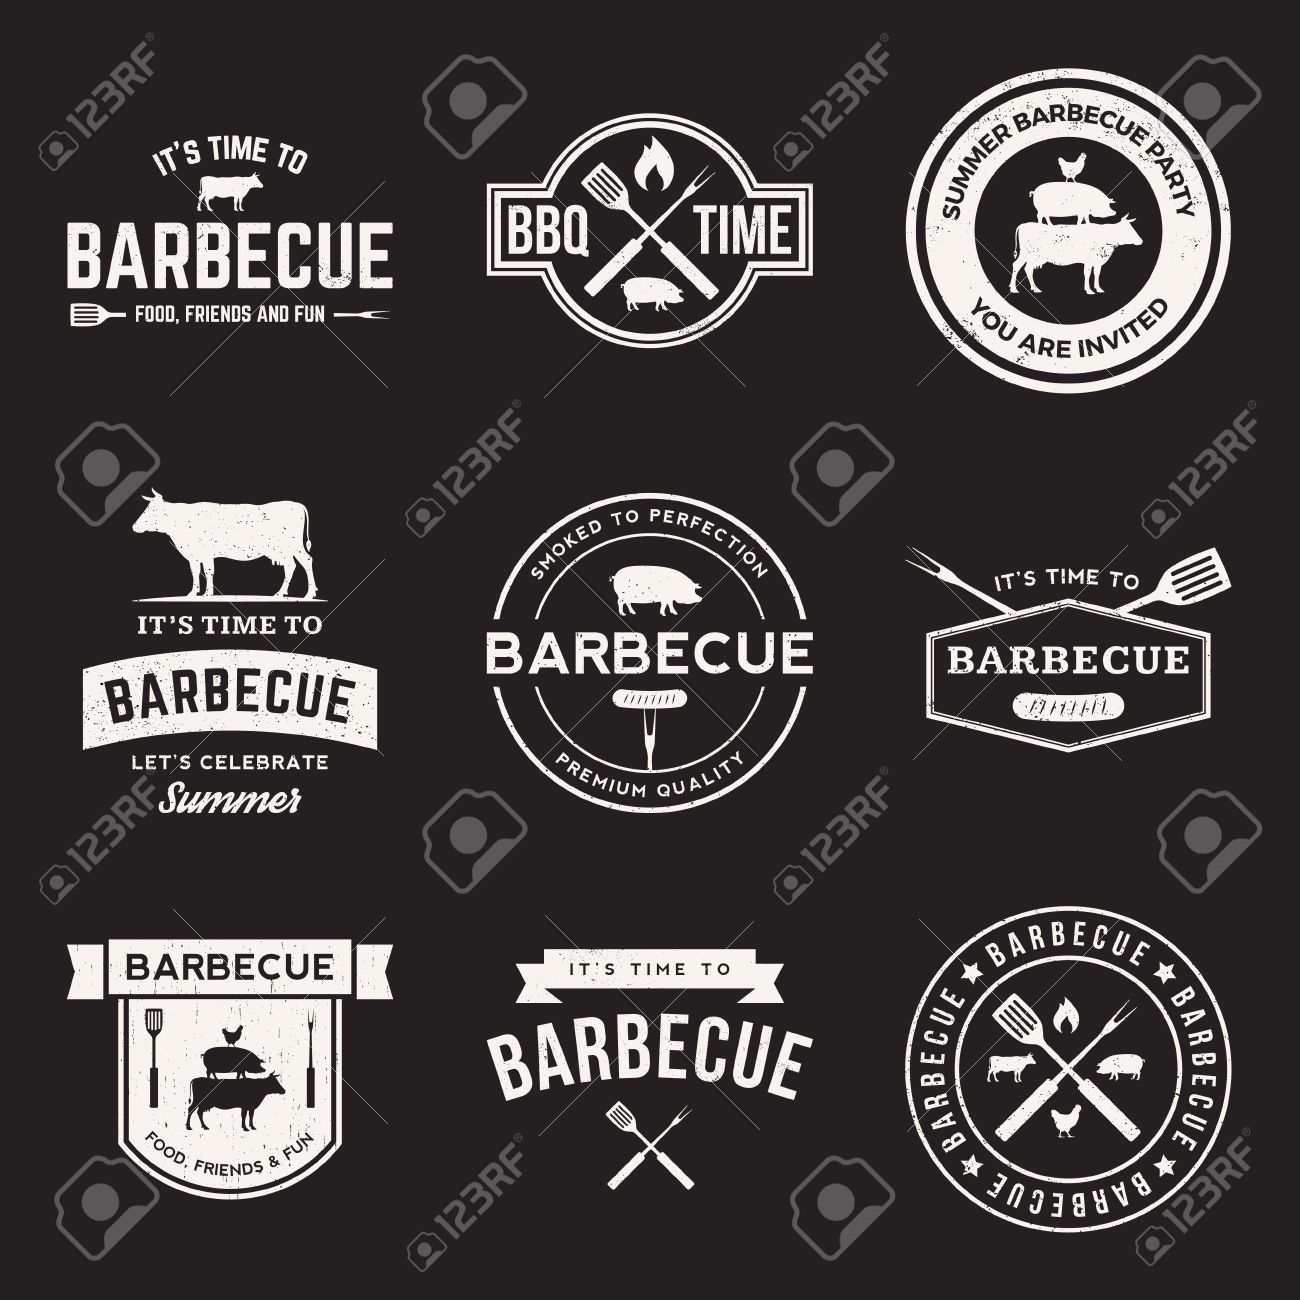 vector set of barbecue labels, badges and design elements - 42861965